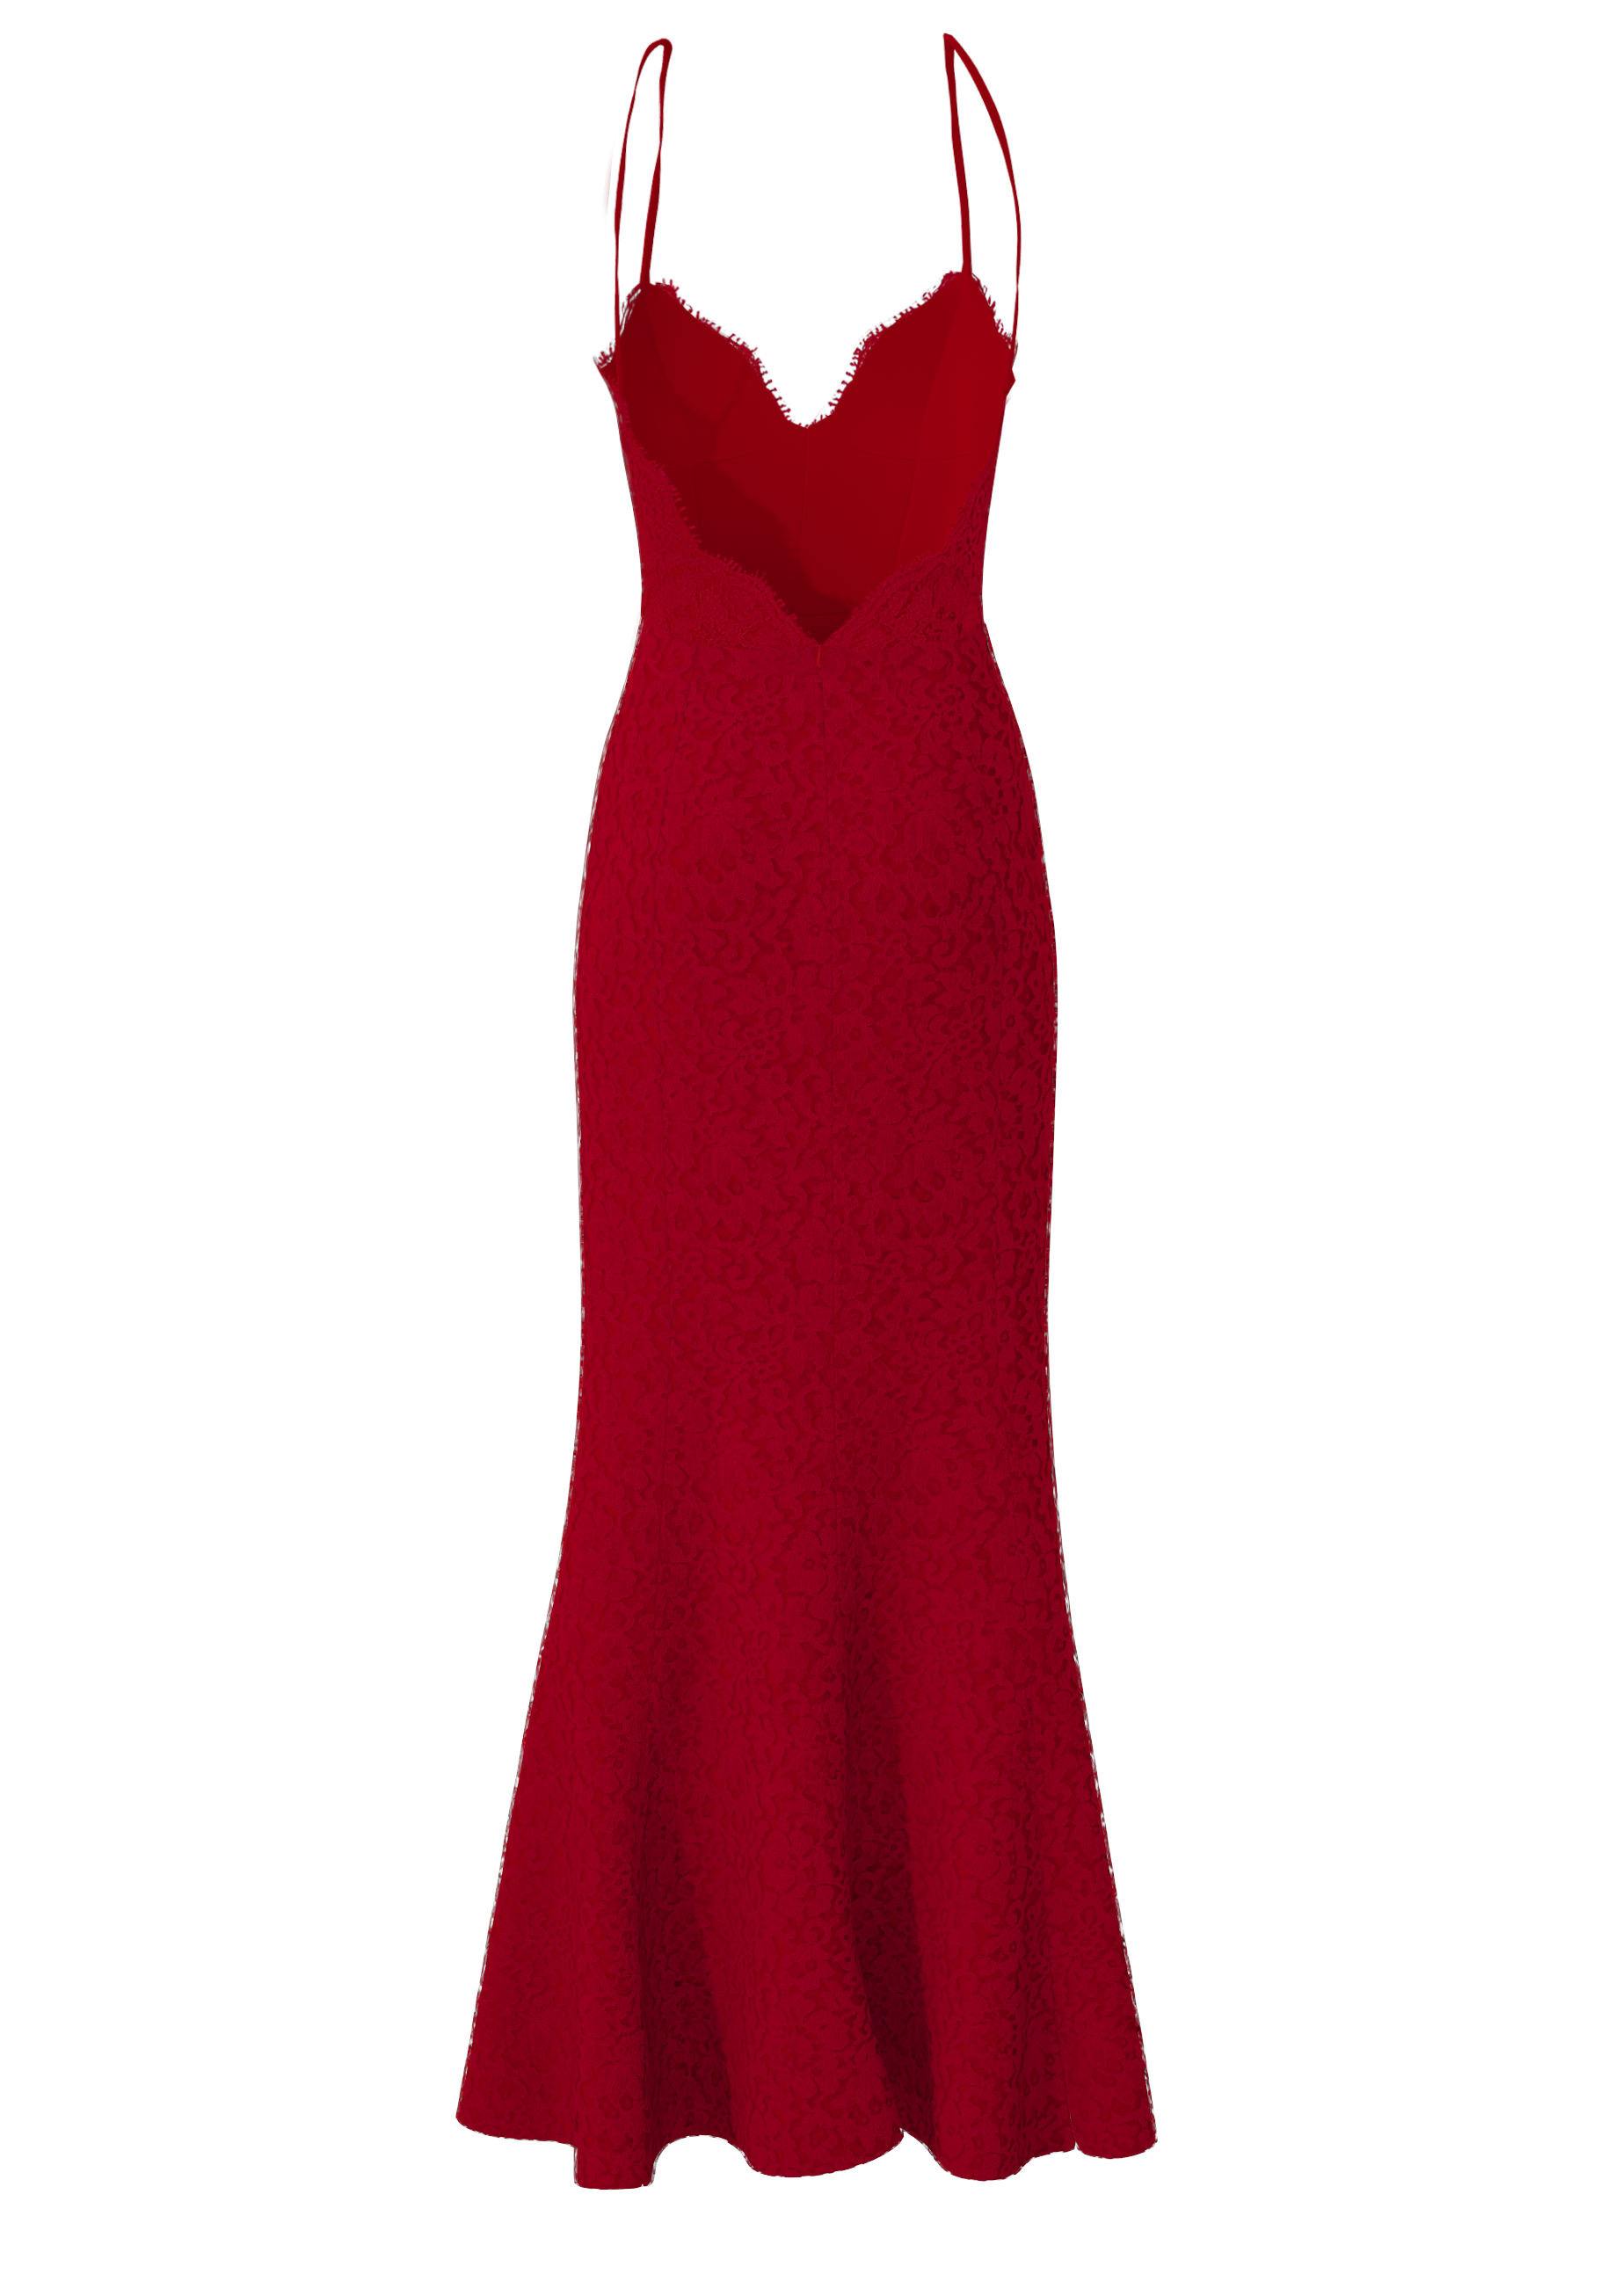 usp1068-EVERETT-LACE-RED-C2-BACK